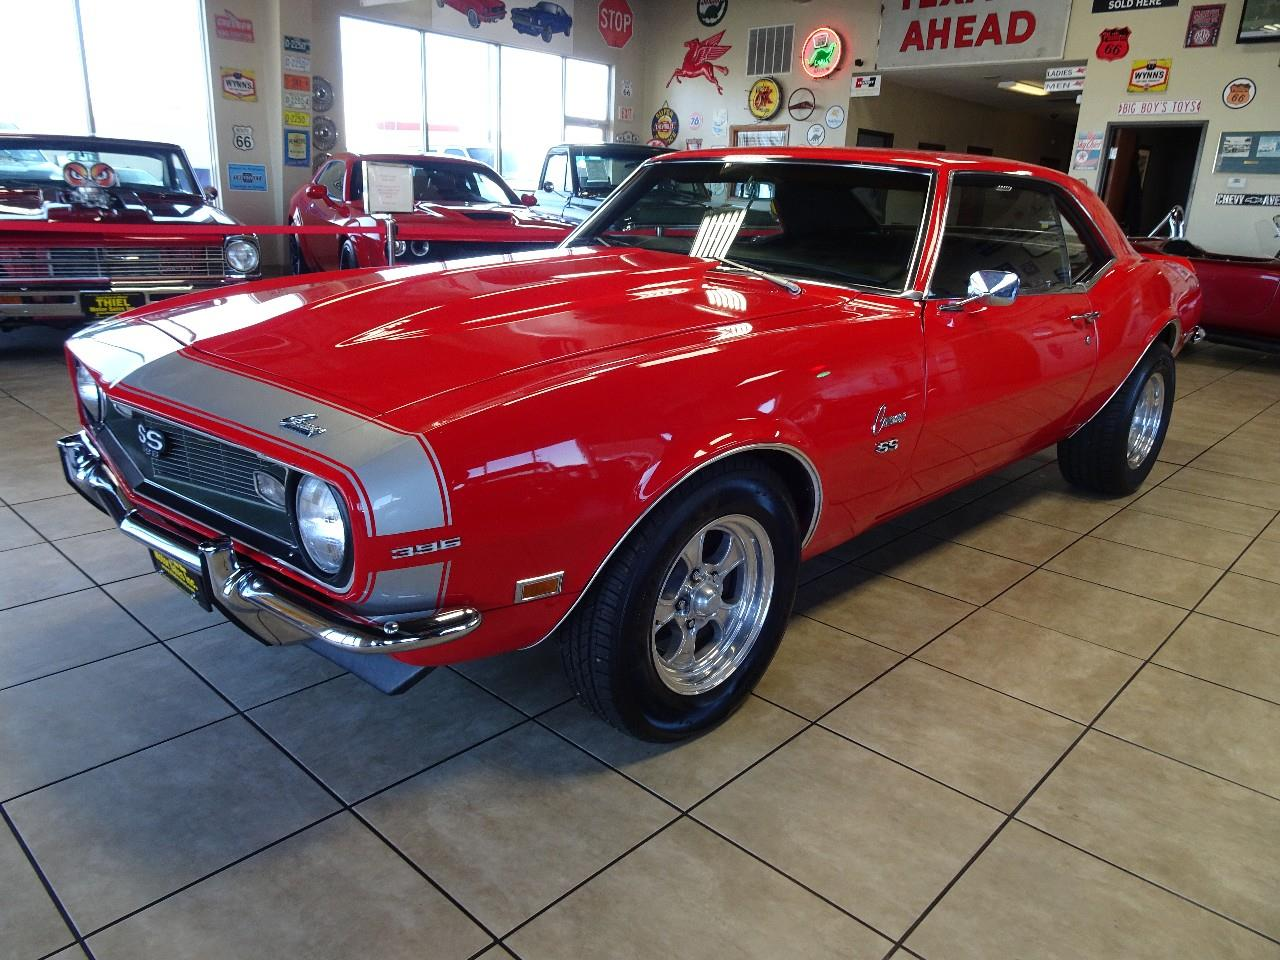 Large Picture of 1968 Chevrolet Camaro SS - $32,997.00 - P3YL